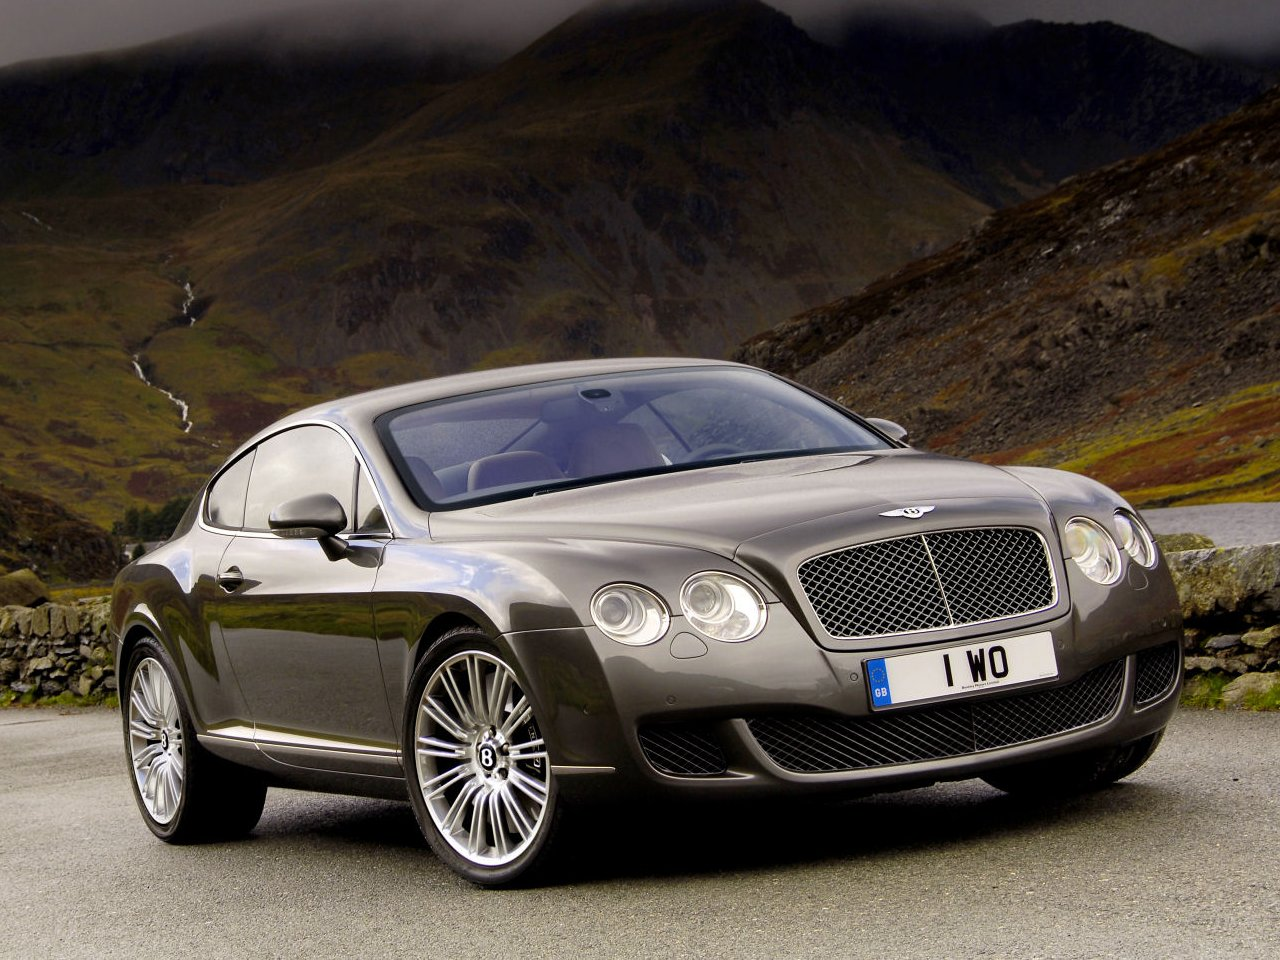 Bentley-destop-hd-wallpaper-wp424058